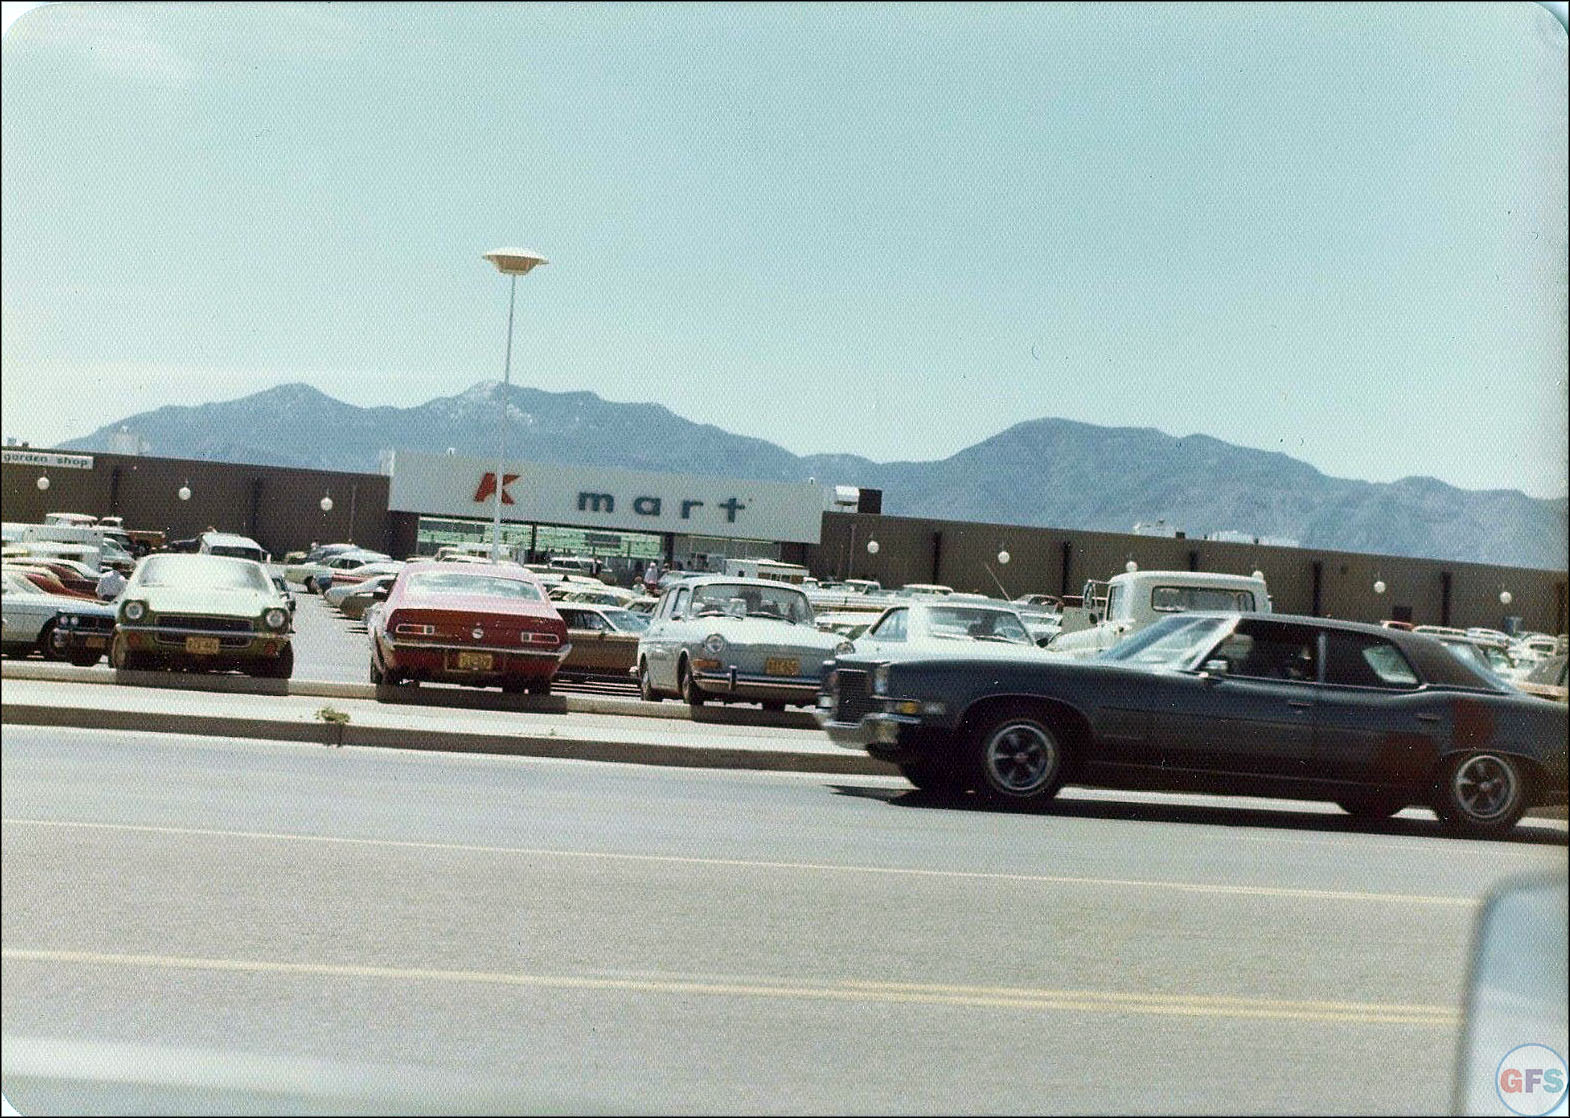 Found photograph of a Kmart in the 1970s